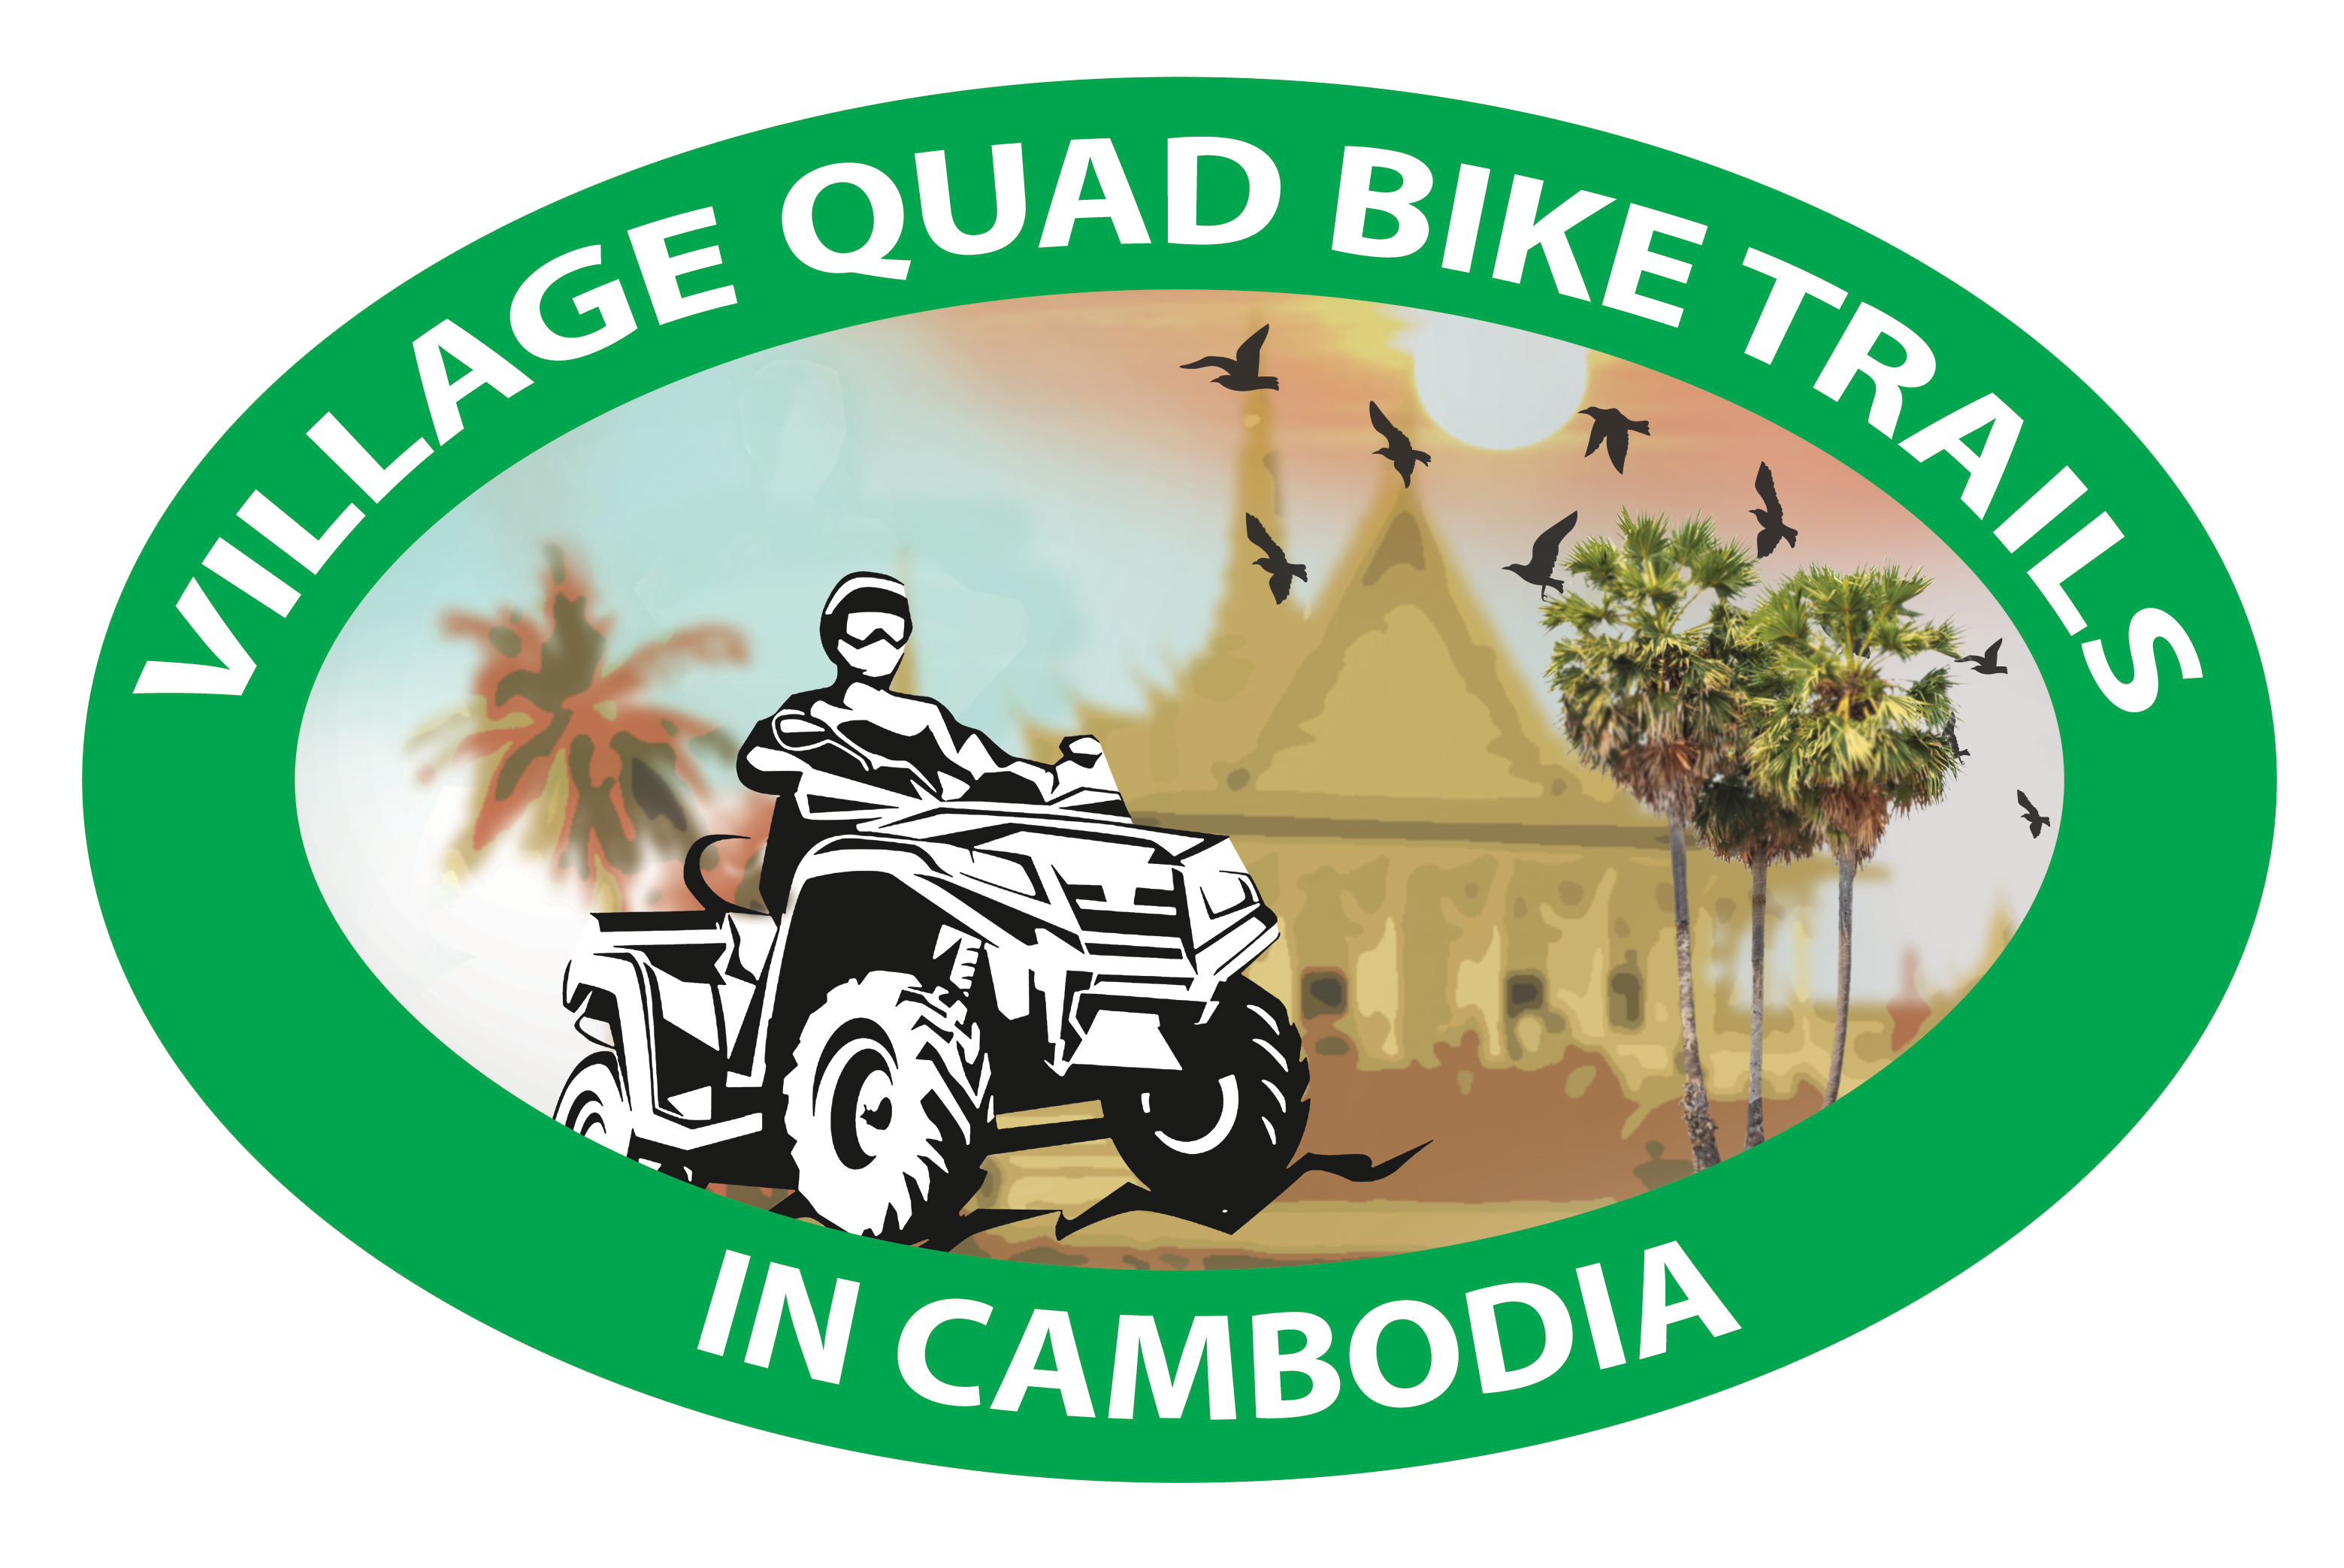 Village Quad Bike Trails